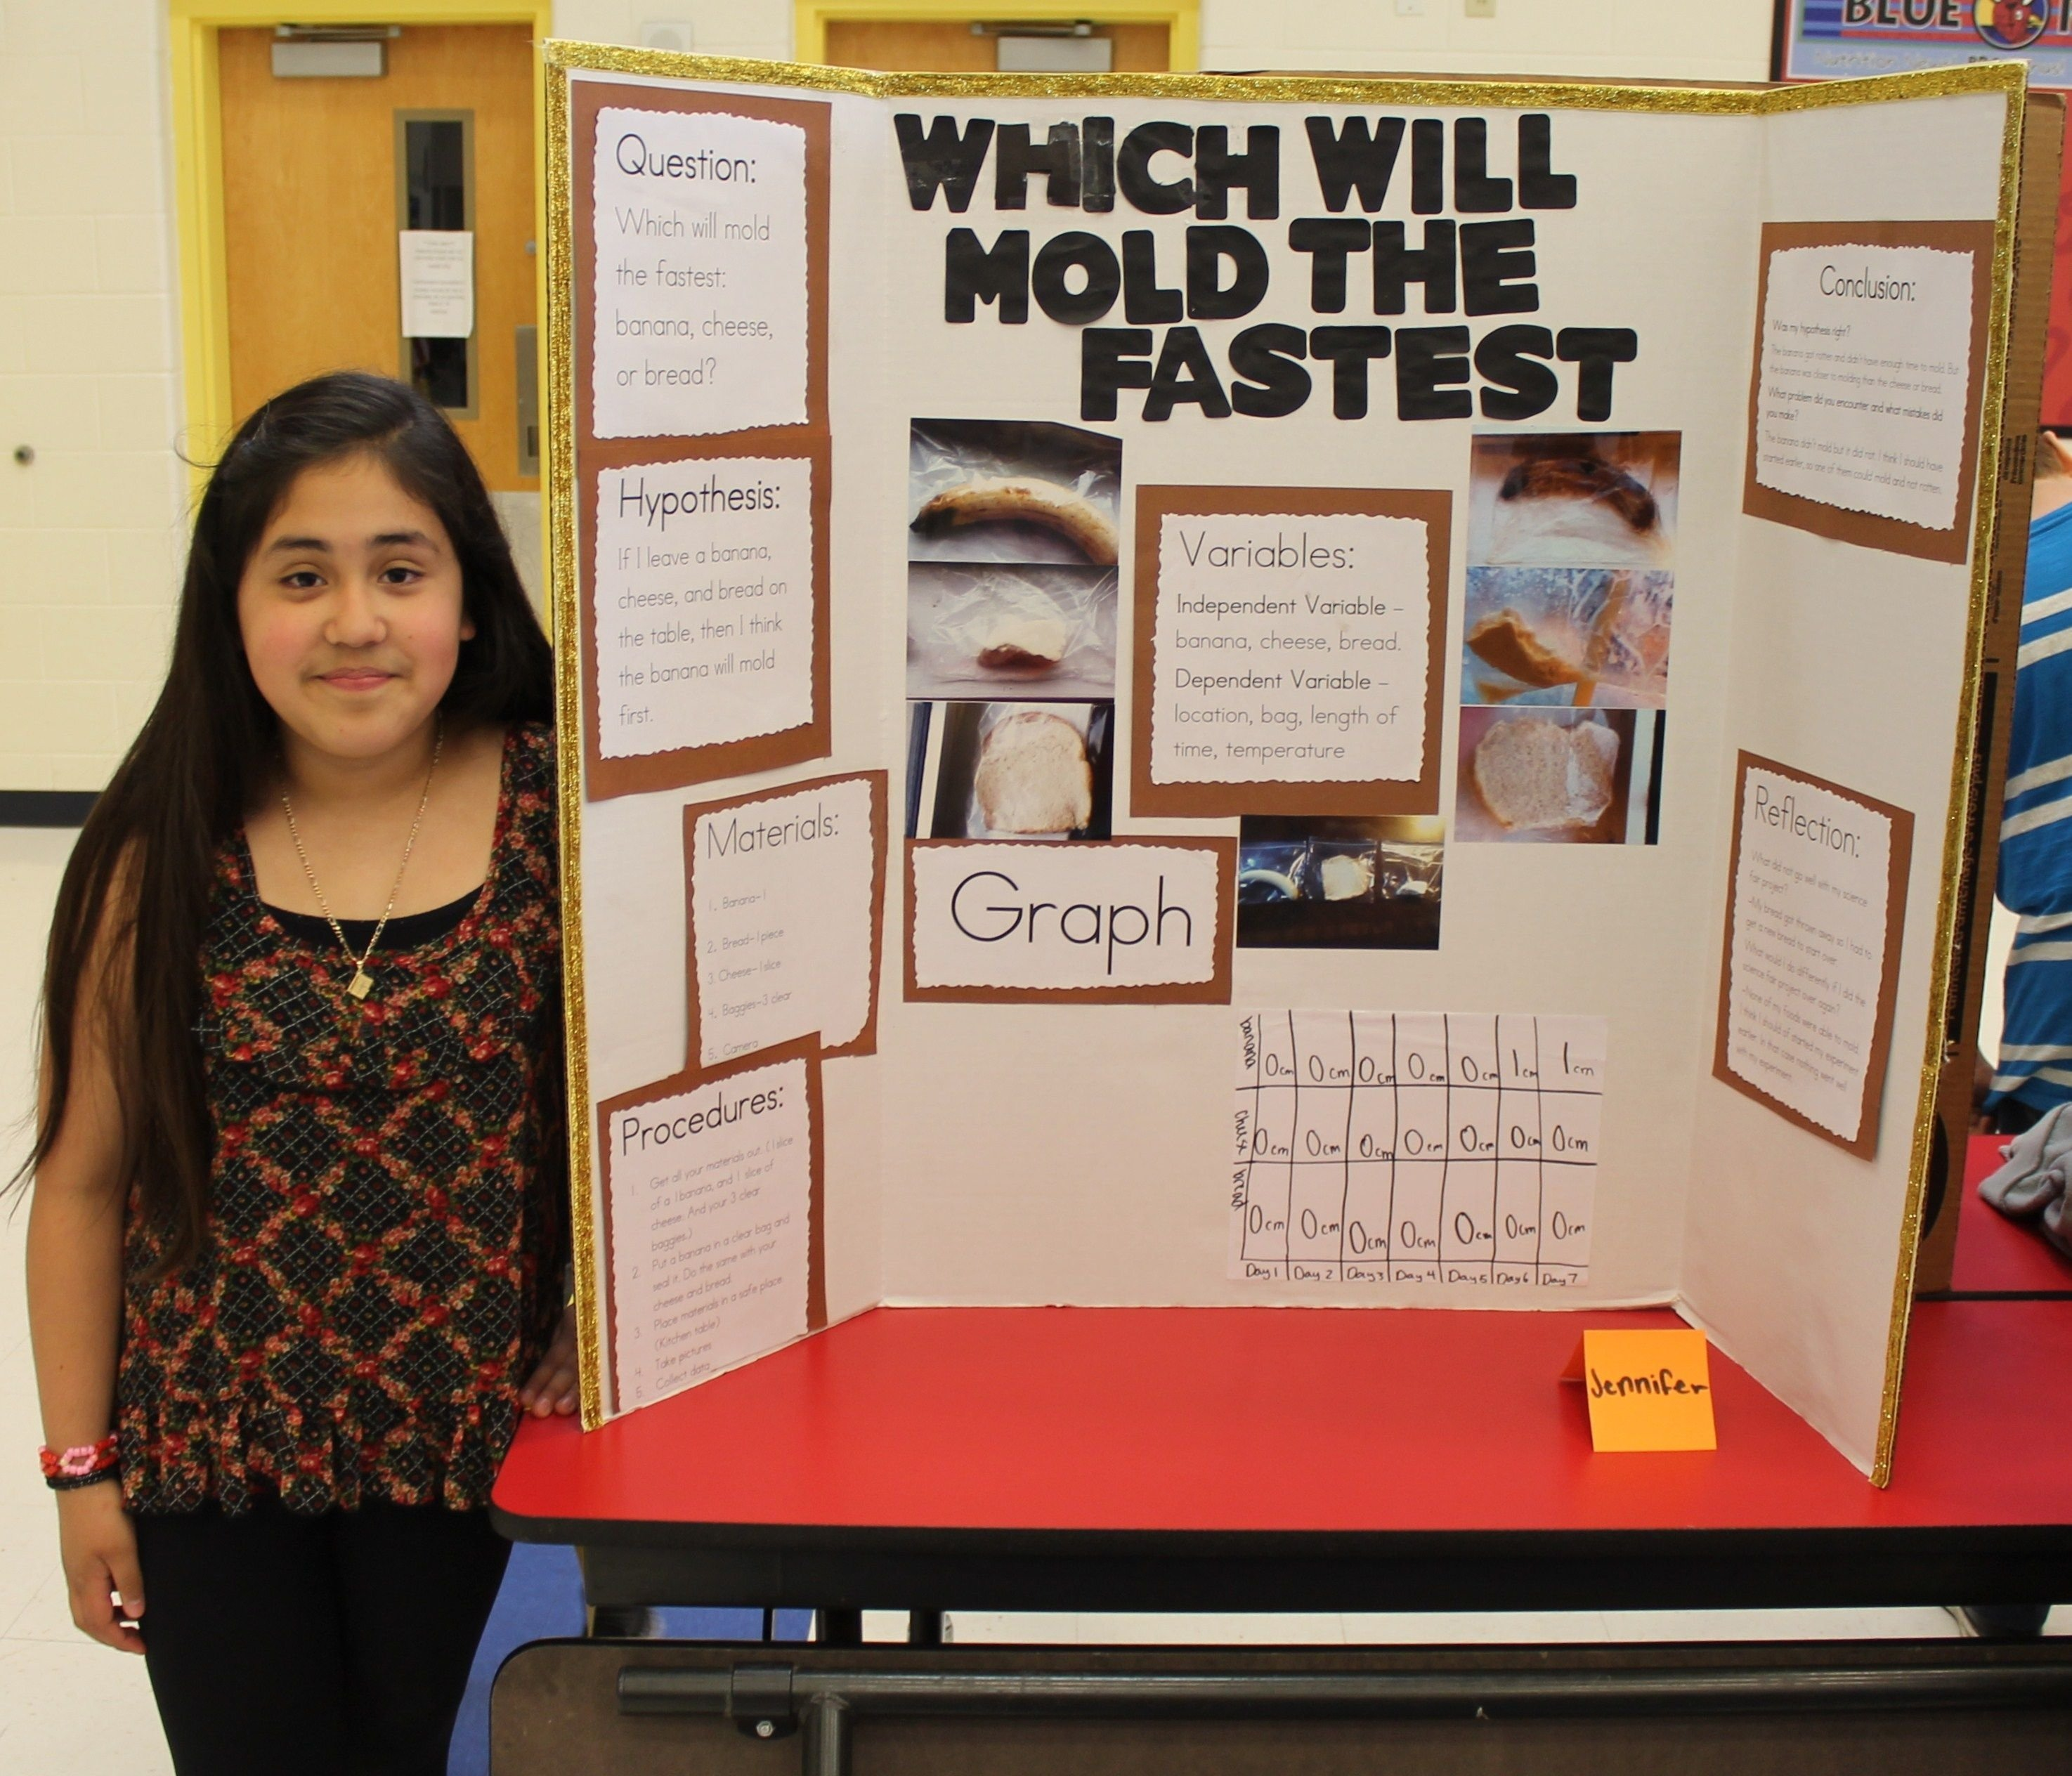 10 Beautiful 3Rd Grade Science Fair Project Ideas For Kids easy science fair projects for 3rd grade idea google search 7 2020